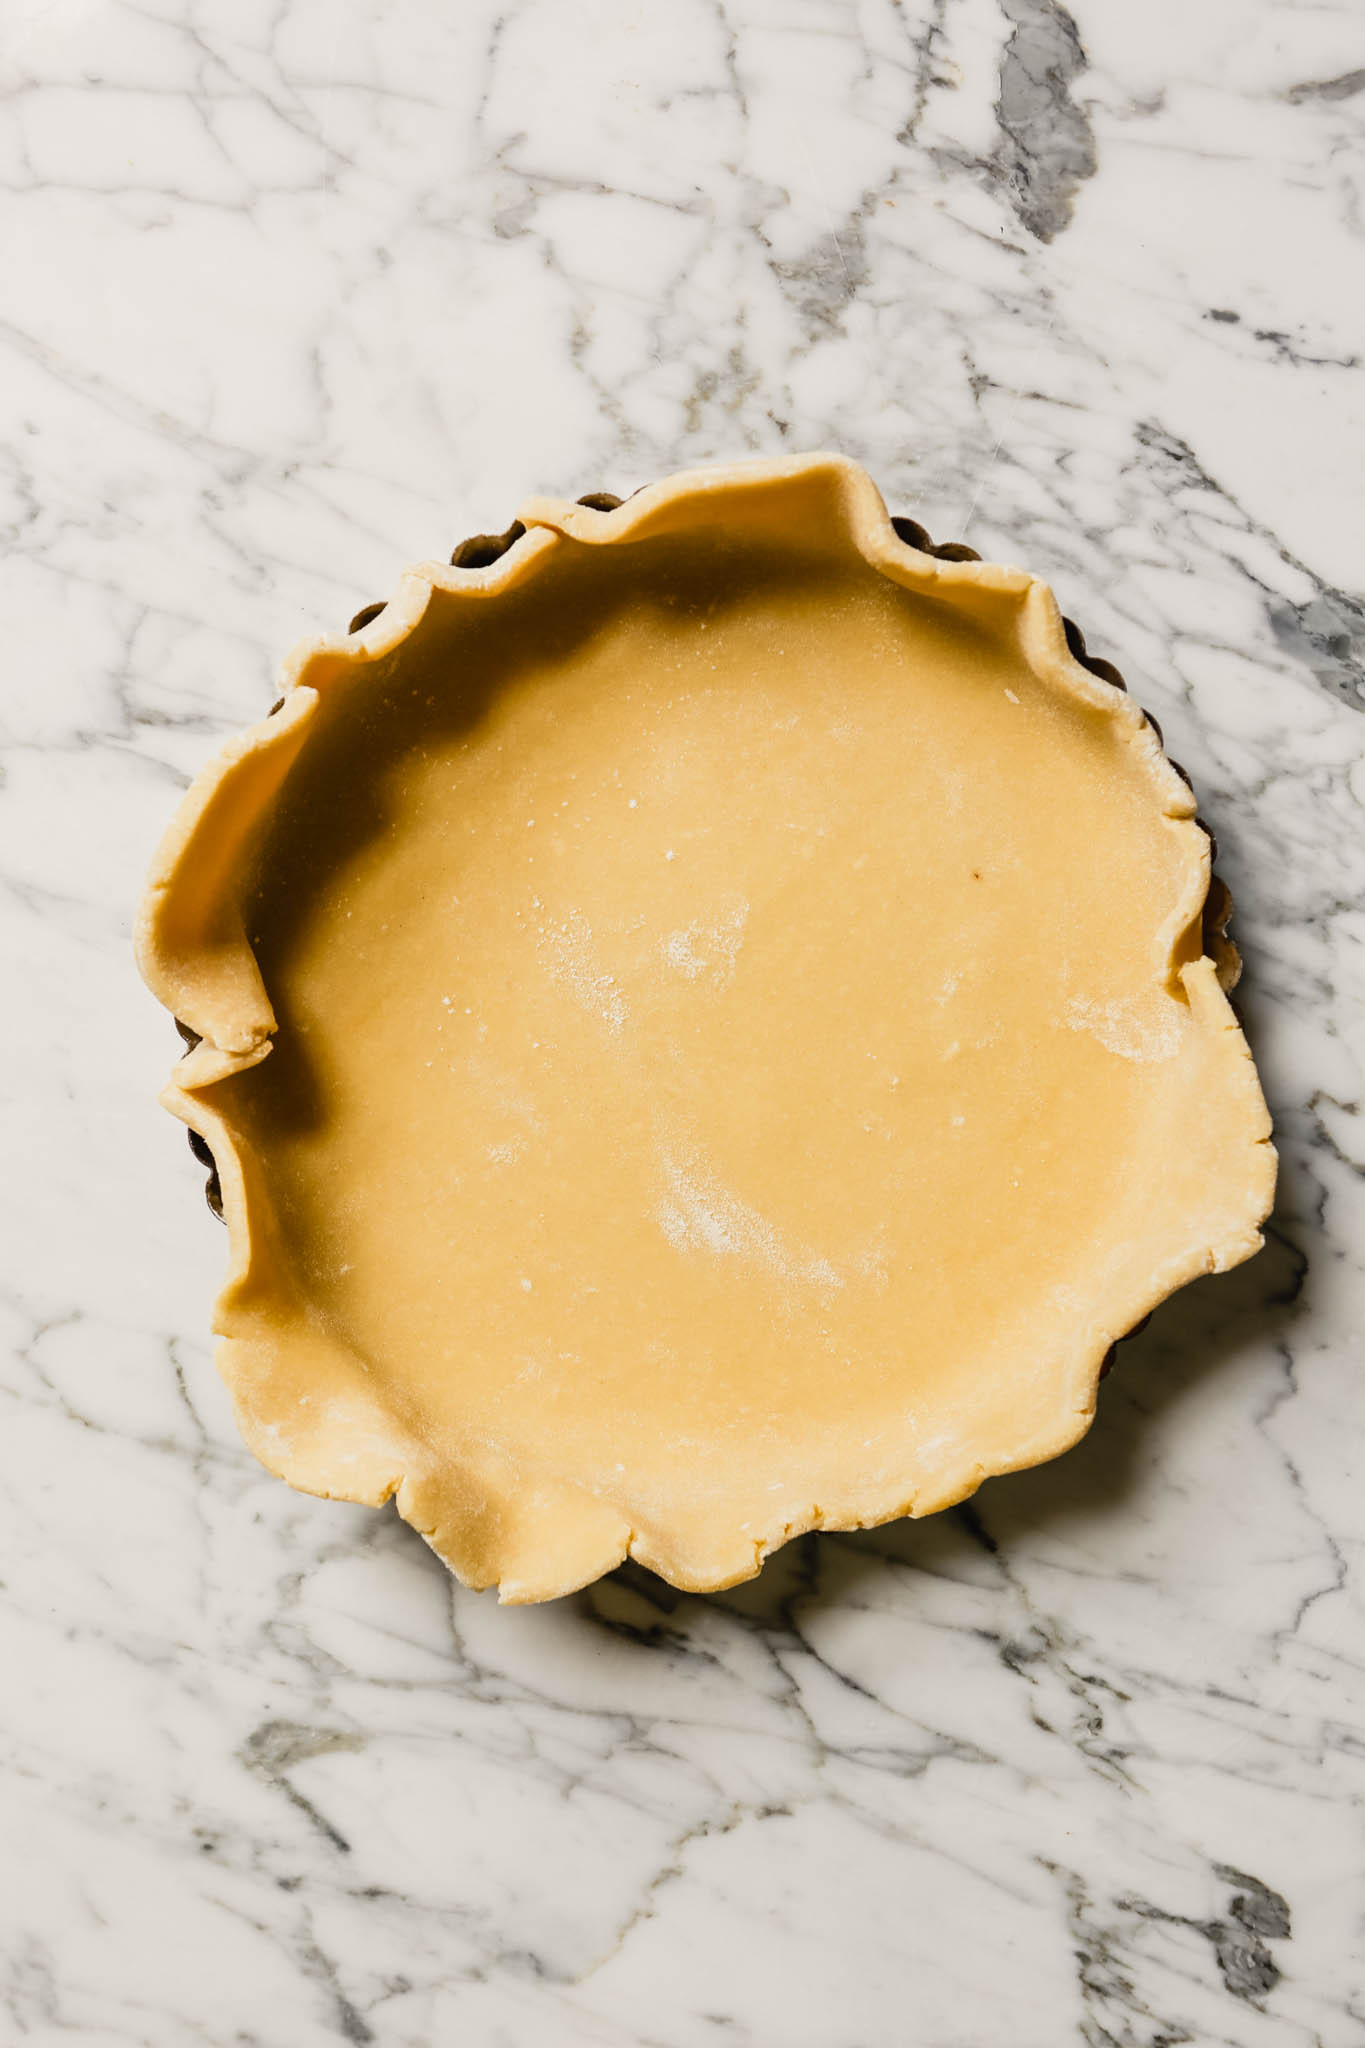 Photograph of dough placed in a tart pan set on a marble table.